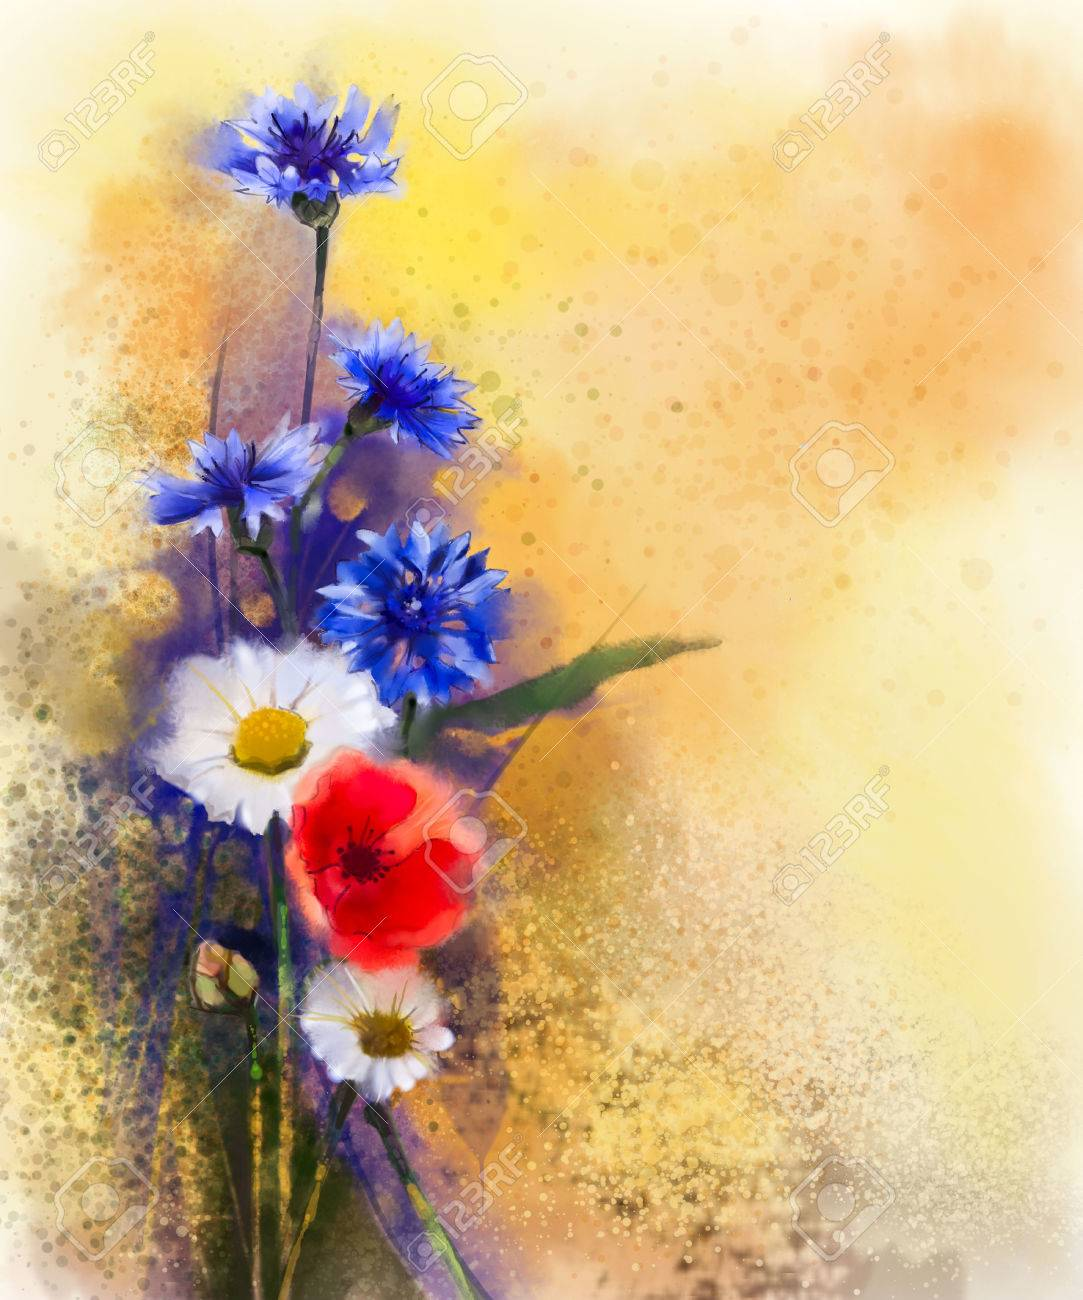 Watercolor Red Poppy Flowers Blue Cornflower And White Daisy